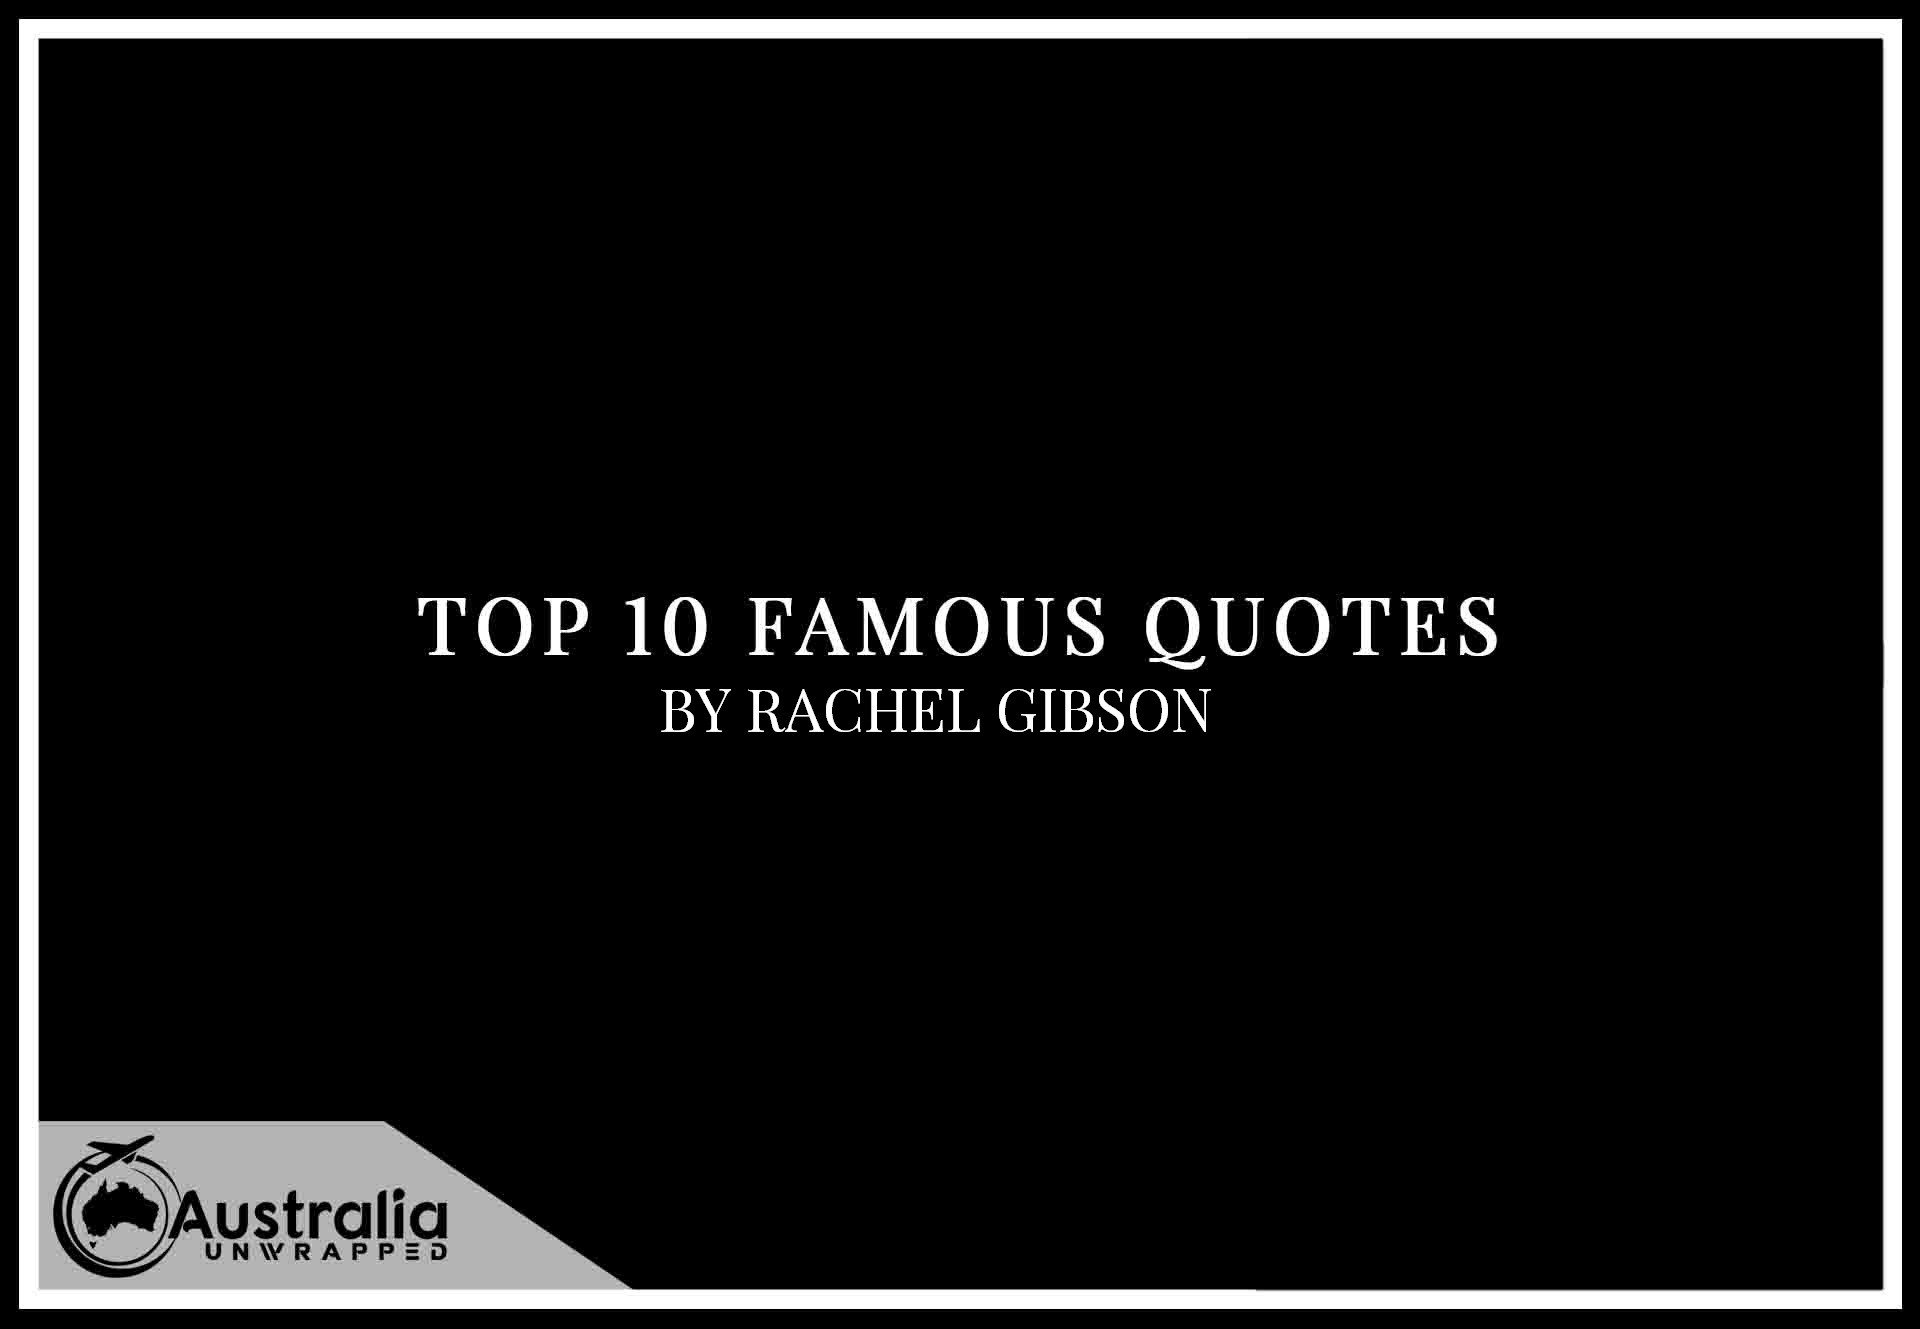 Top 10 Famous Quotes by Author Rachel Gibson